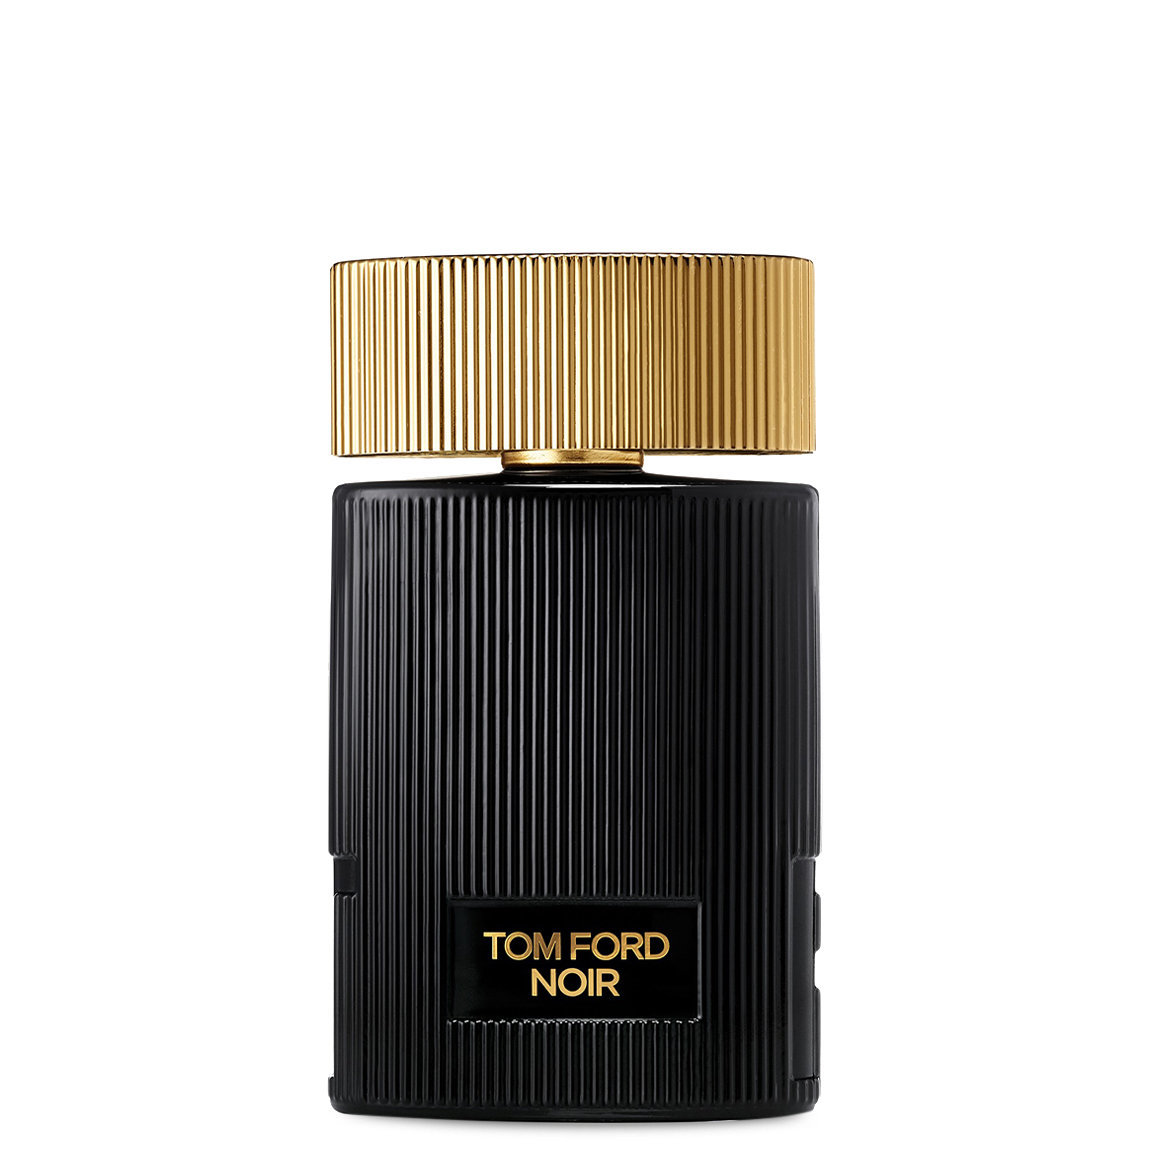 TOM FORD Noir Pour Femme 50 ml alternative view 1 - product swatch.